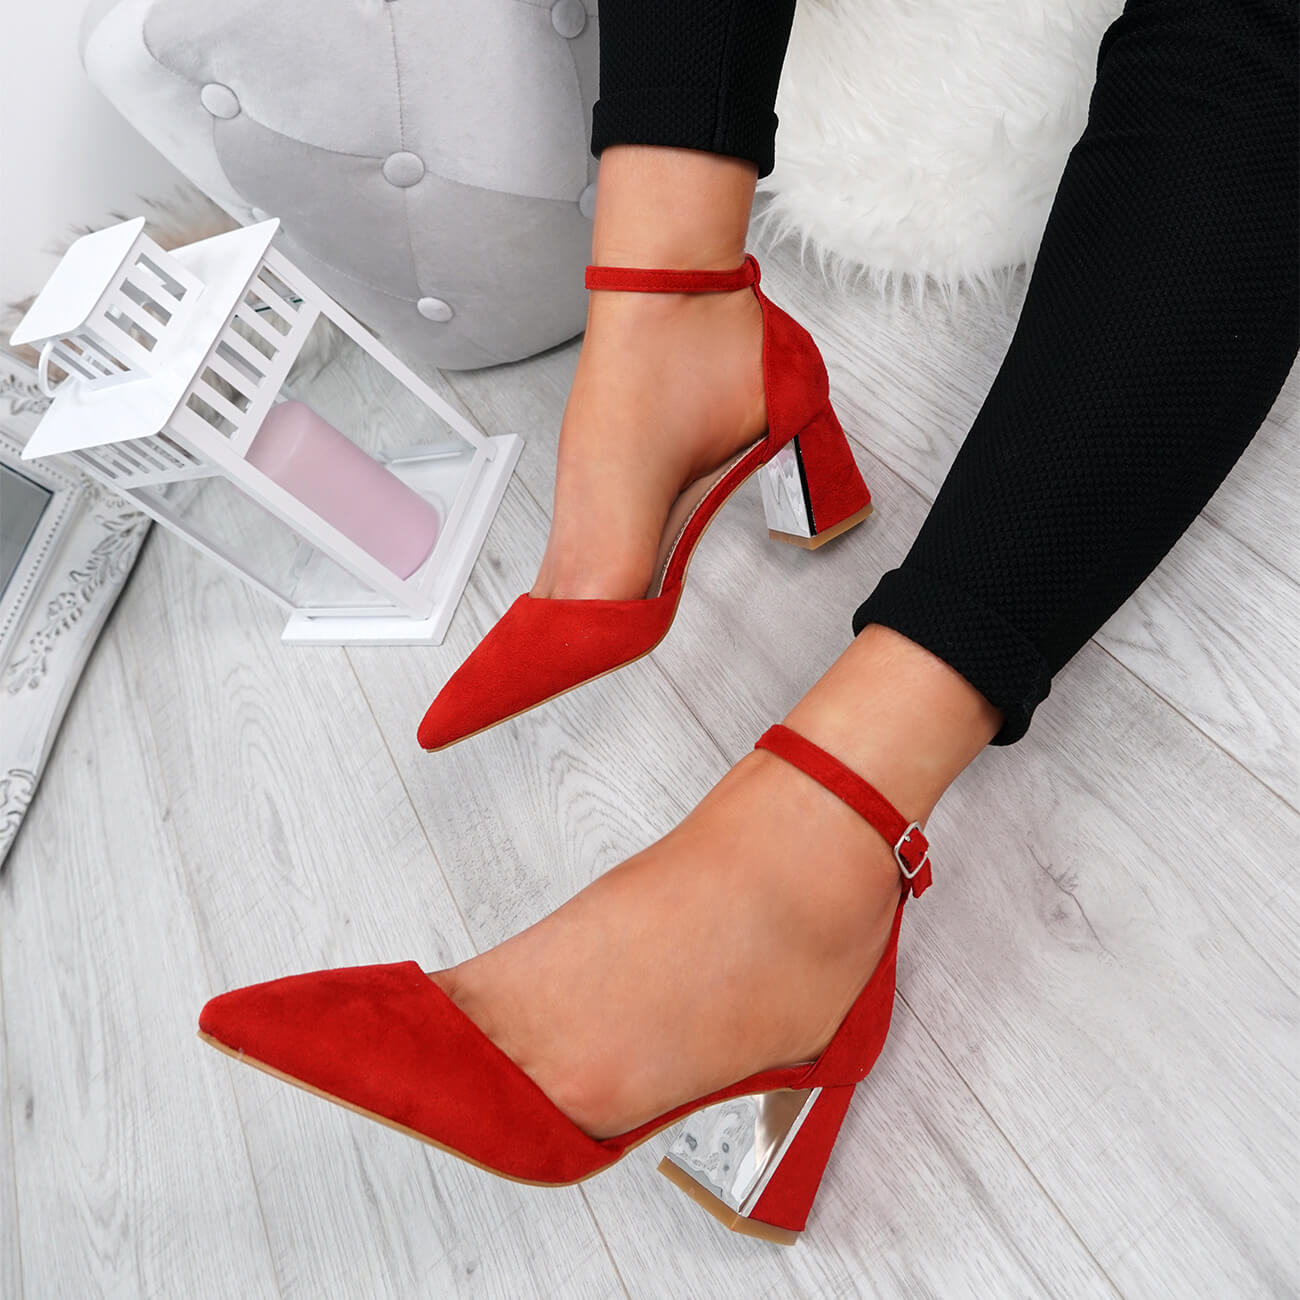 WOMENS-LADIES-ANKLE-STRAP-POINTED-HIGH-BLOCK-HEEL-PUMPS-COURT-SHOES-SIZE thumbnail 17